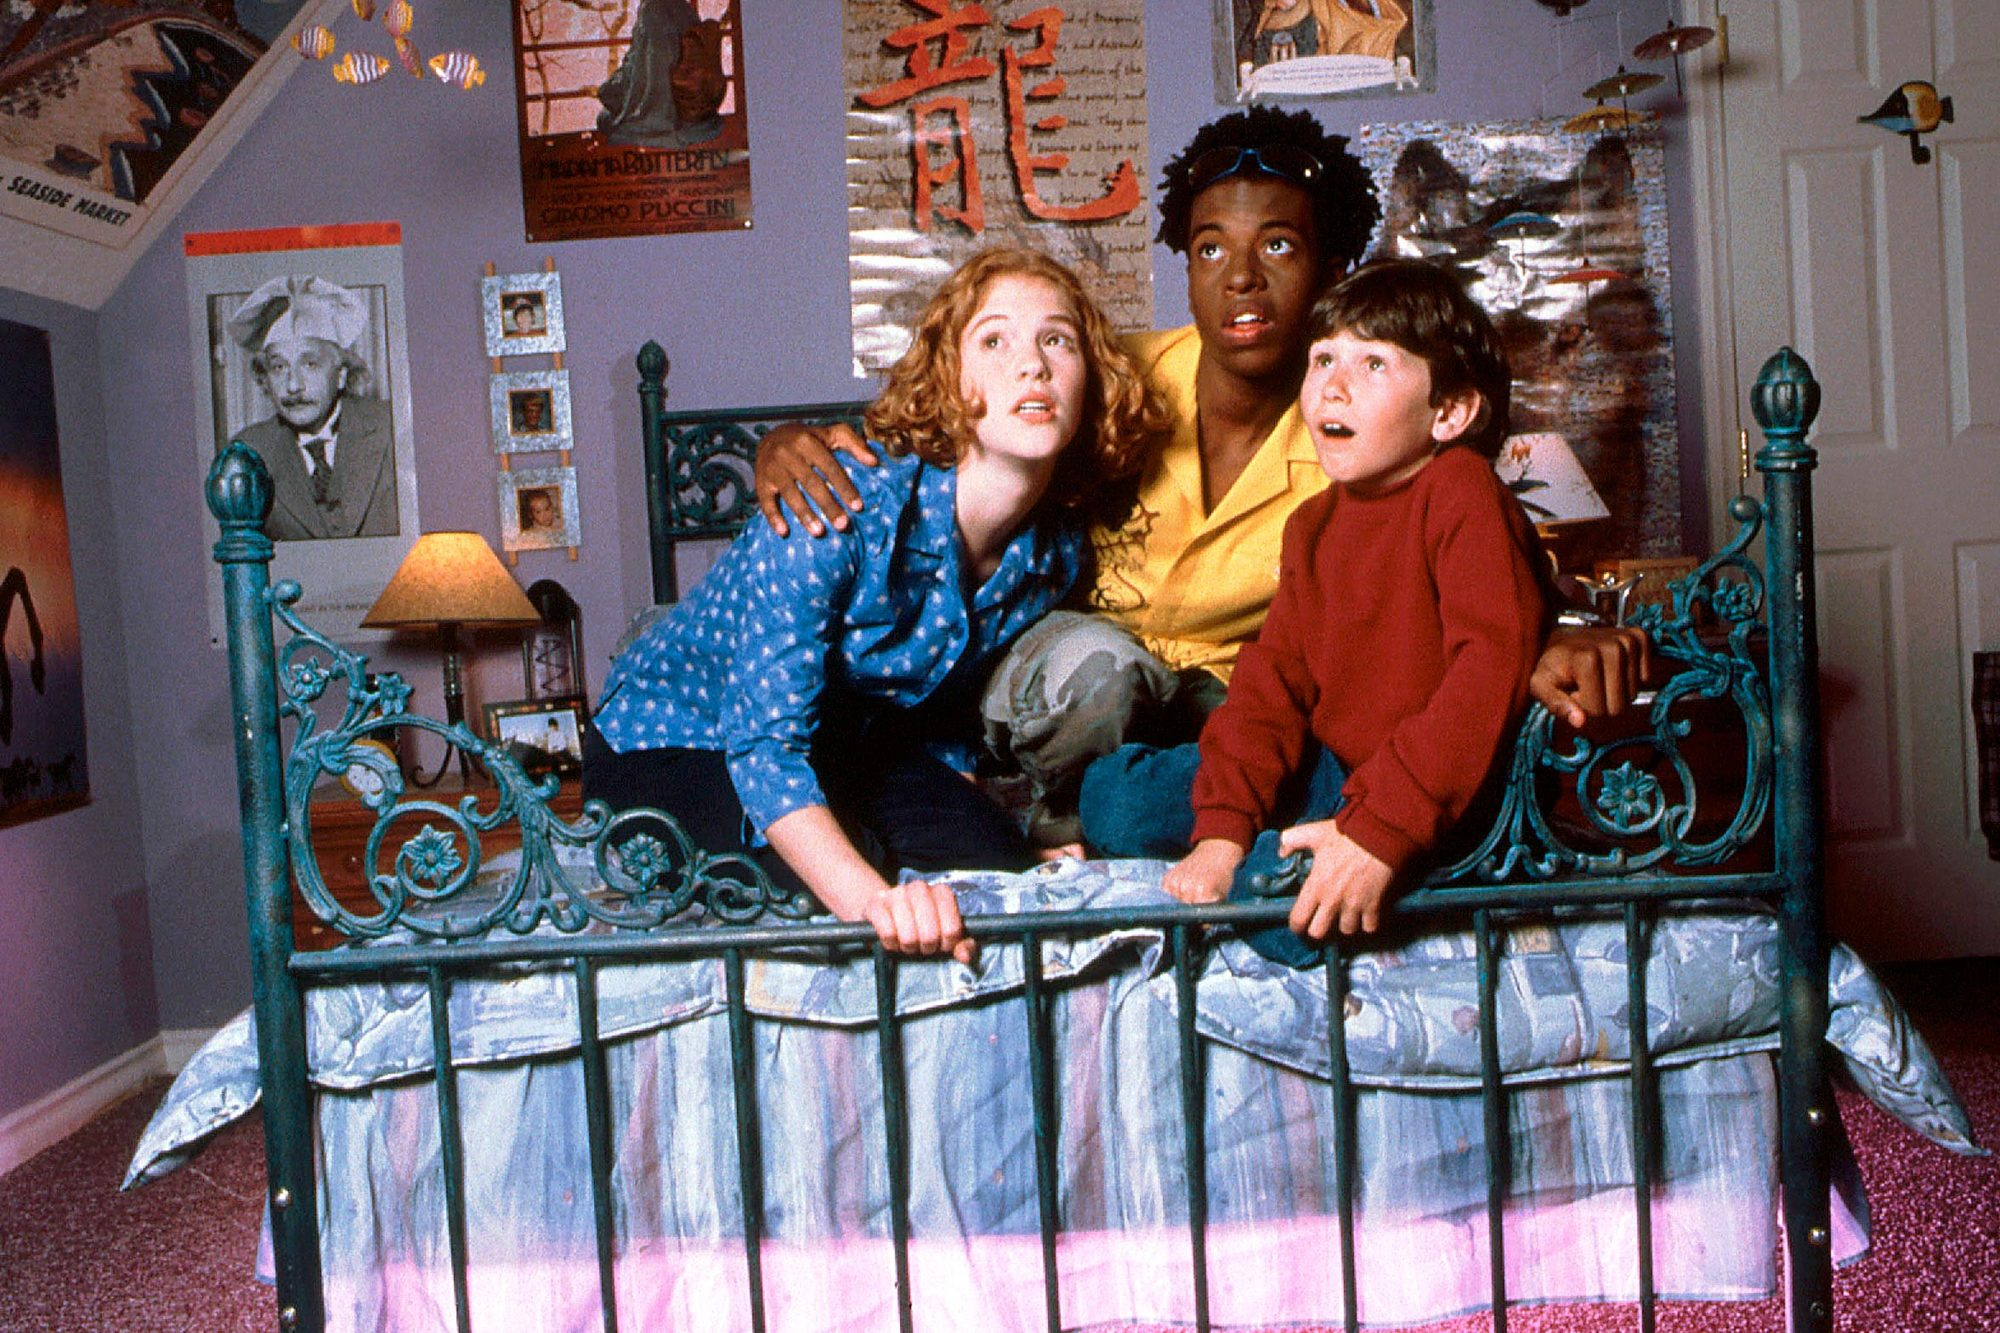 DON'T LOOK UNDER THE BED, from left: Erin Chambers, Ty Hodges, Jake Sakson, 1999, © Buena